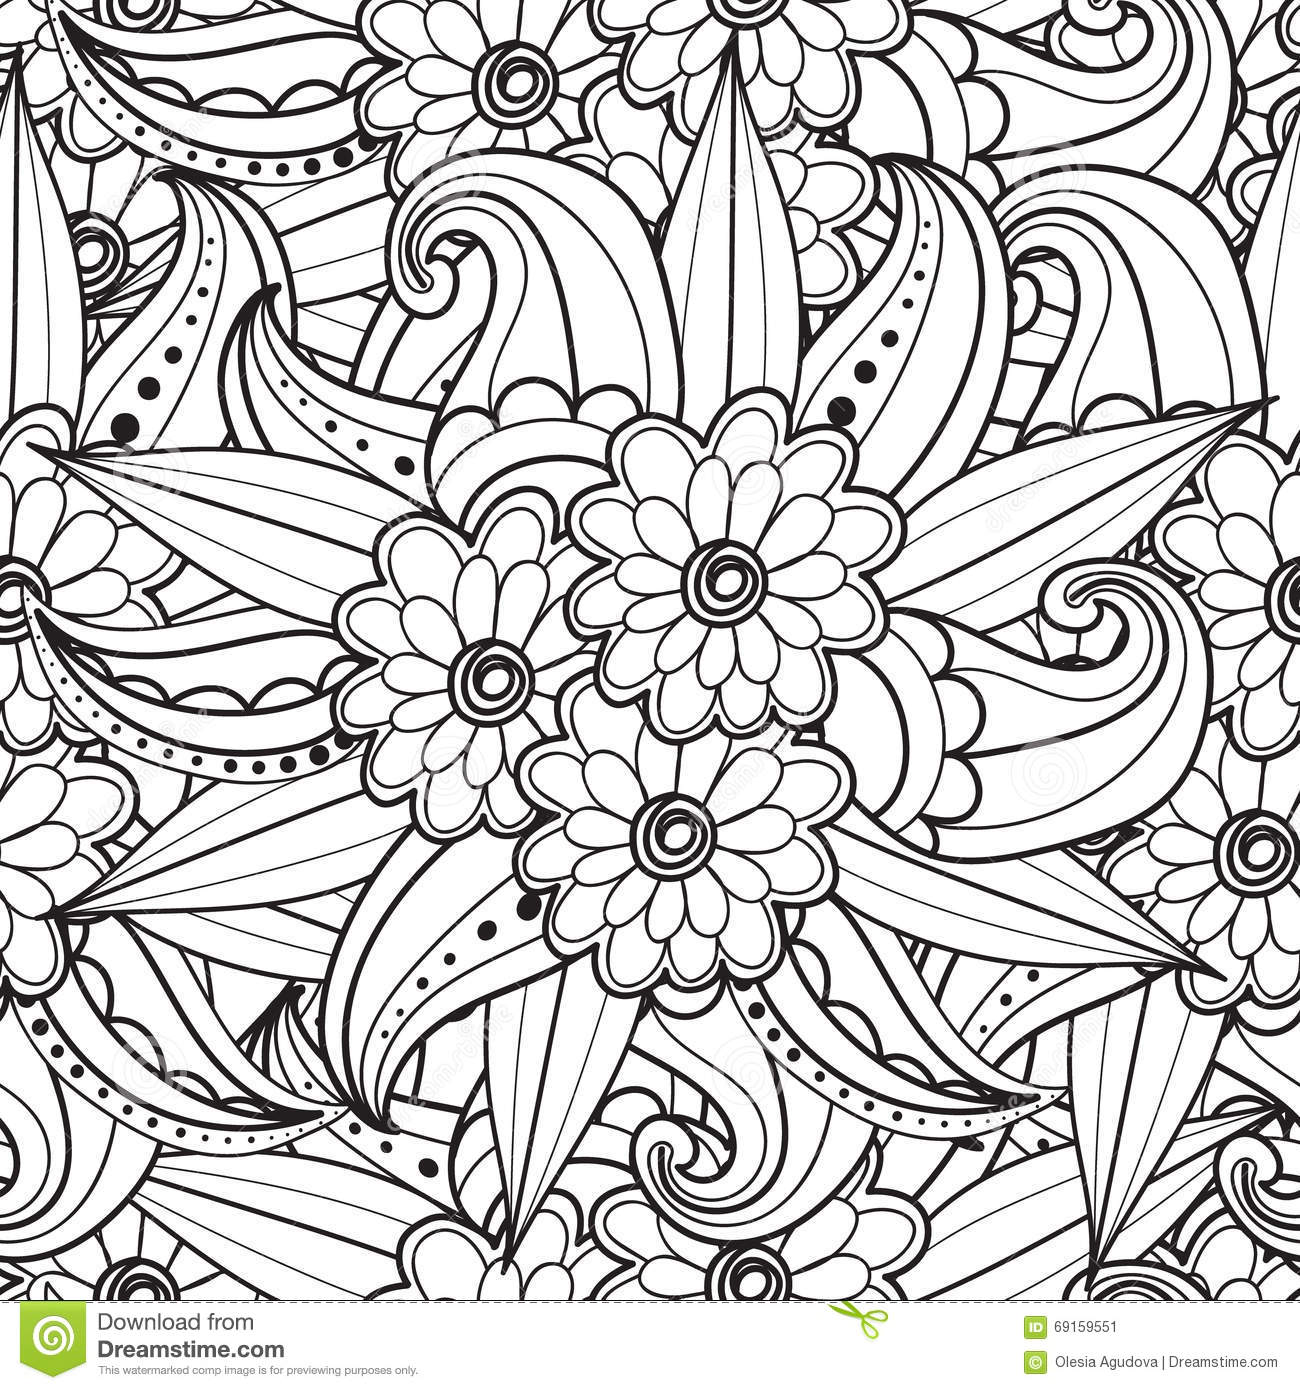 Pages For Adult Coloring Book. Hand Drawn Artistic Ethnic ...